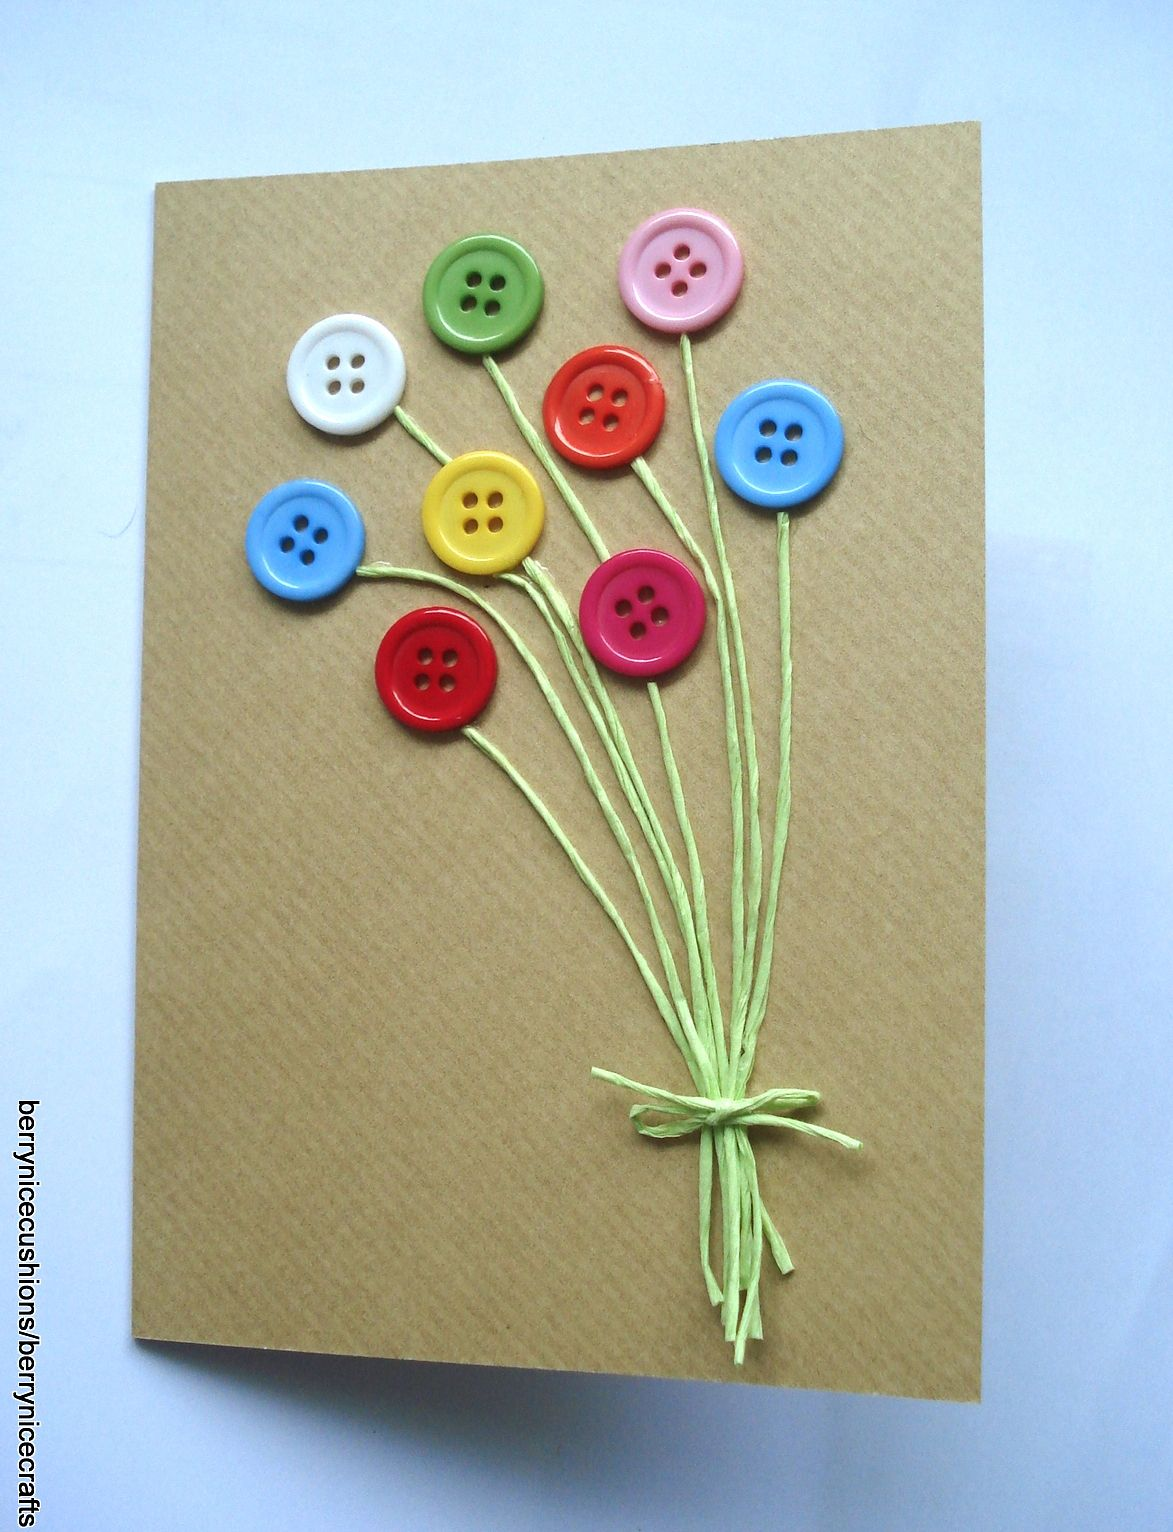 Pin By Berrynicecushions On Thebuttonstore Co Uk Button Cards Handmade Birthday Cards Birthday Cards Diy